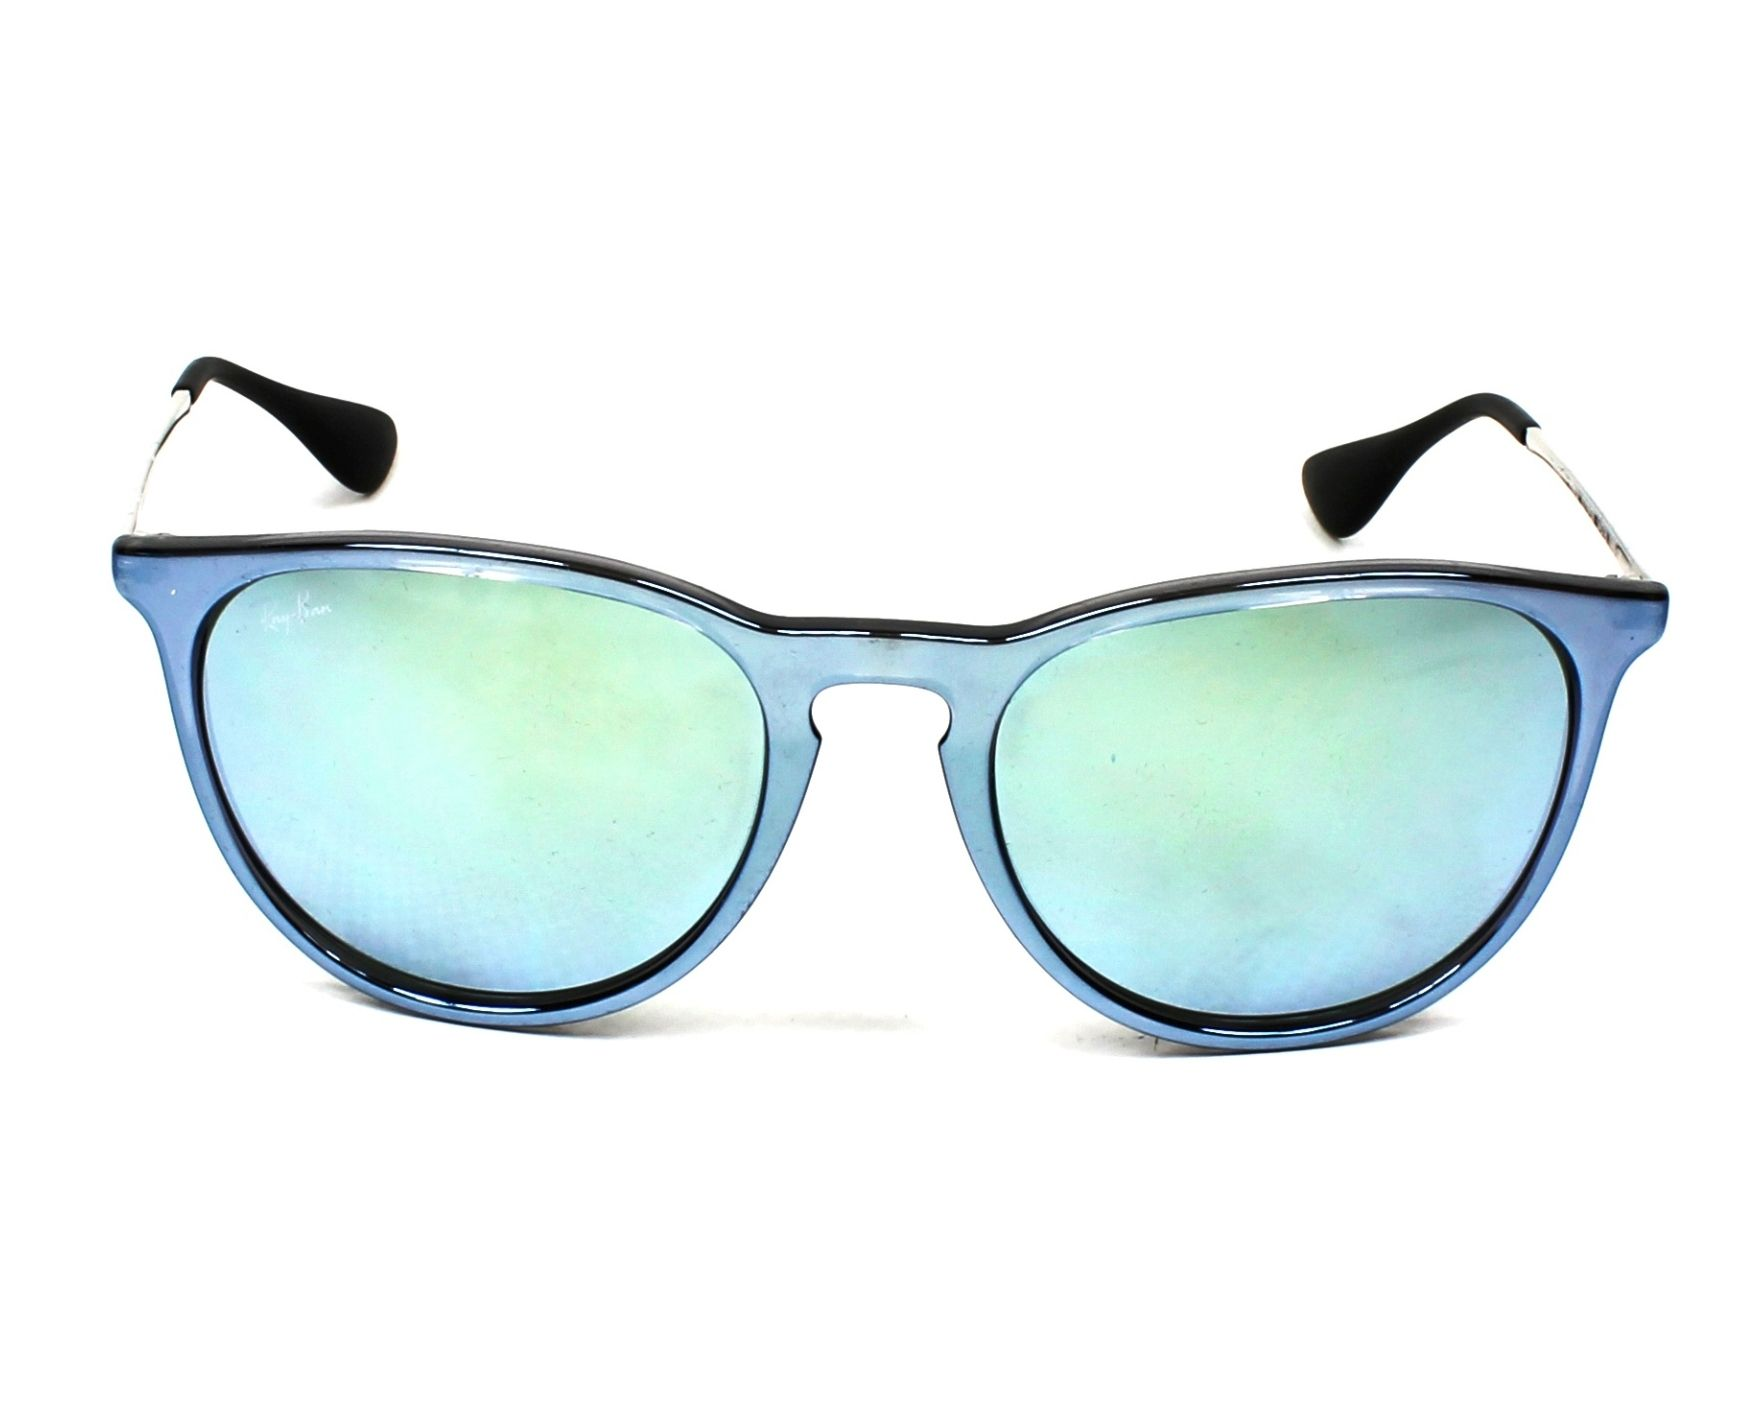 f929f6d3d26 Sunglasses Ray-Ban RB-4171 631930 54-17 Blue Silver front view